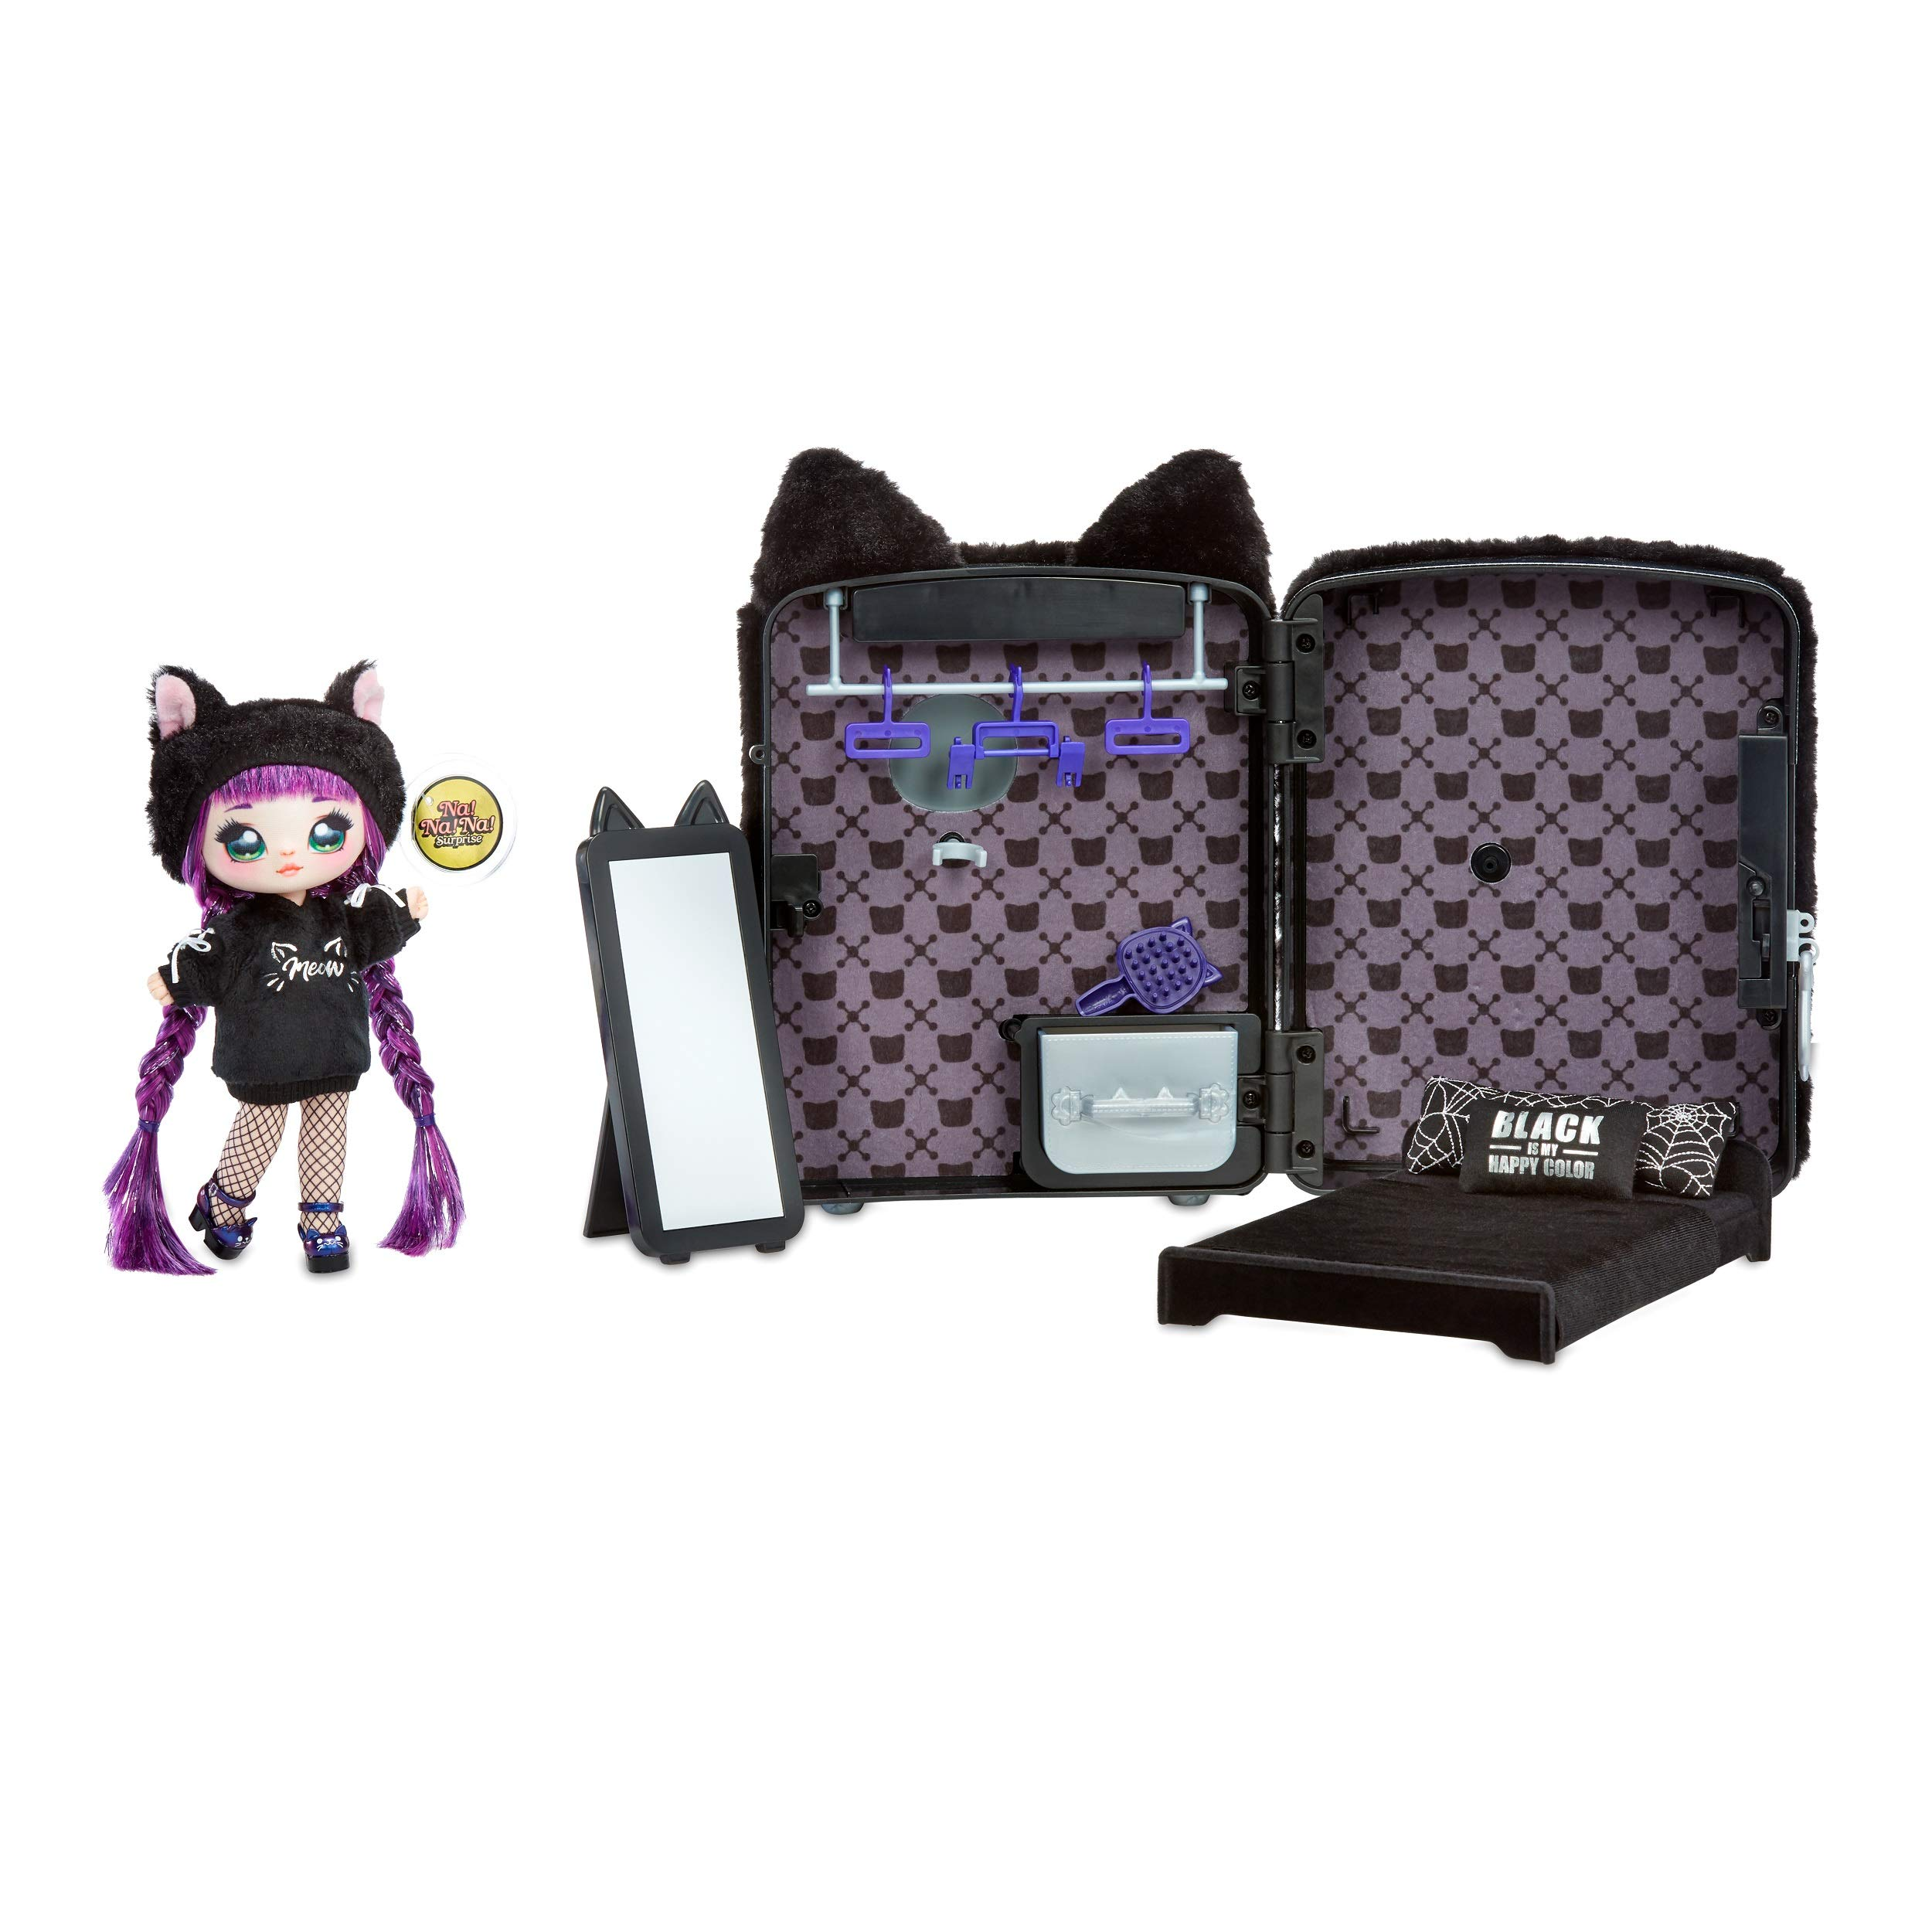 Na Na Na Surprise 3-in-1 Backpack Bedroom Playset With Fashion Doll Tuesday Meow In Exclusive Outfit | Black Fuzzy Kitty Bag, Real Mirror, Closet with Drawer, Pillows, Blanket | Kids Ages 5+